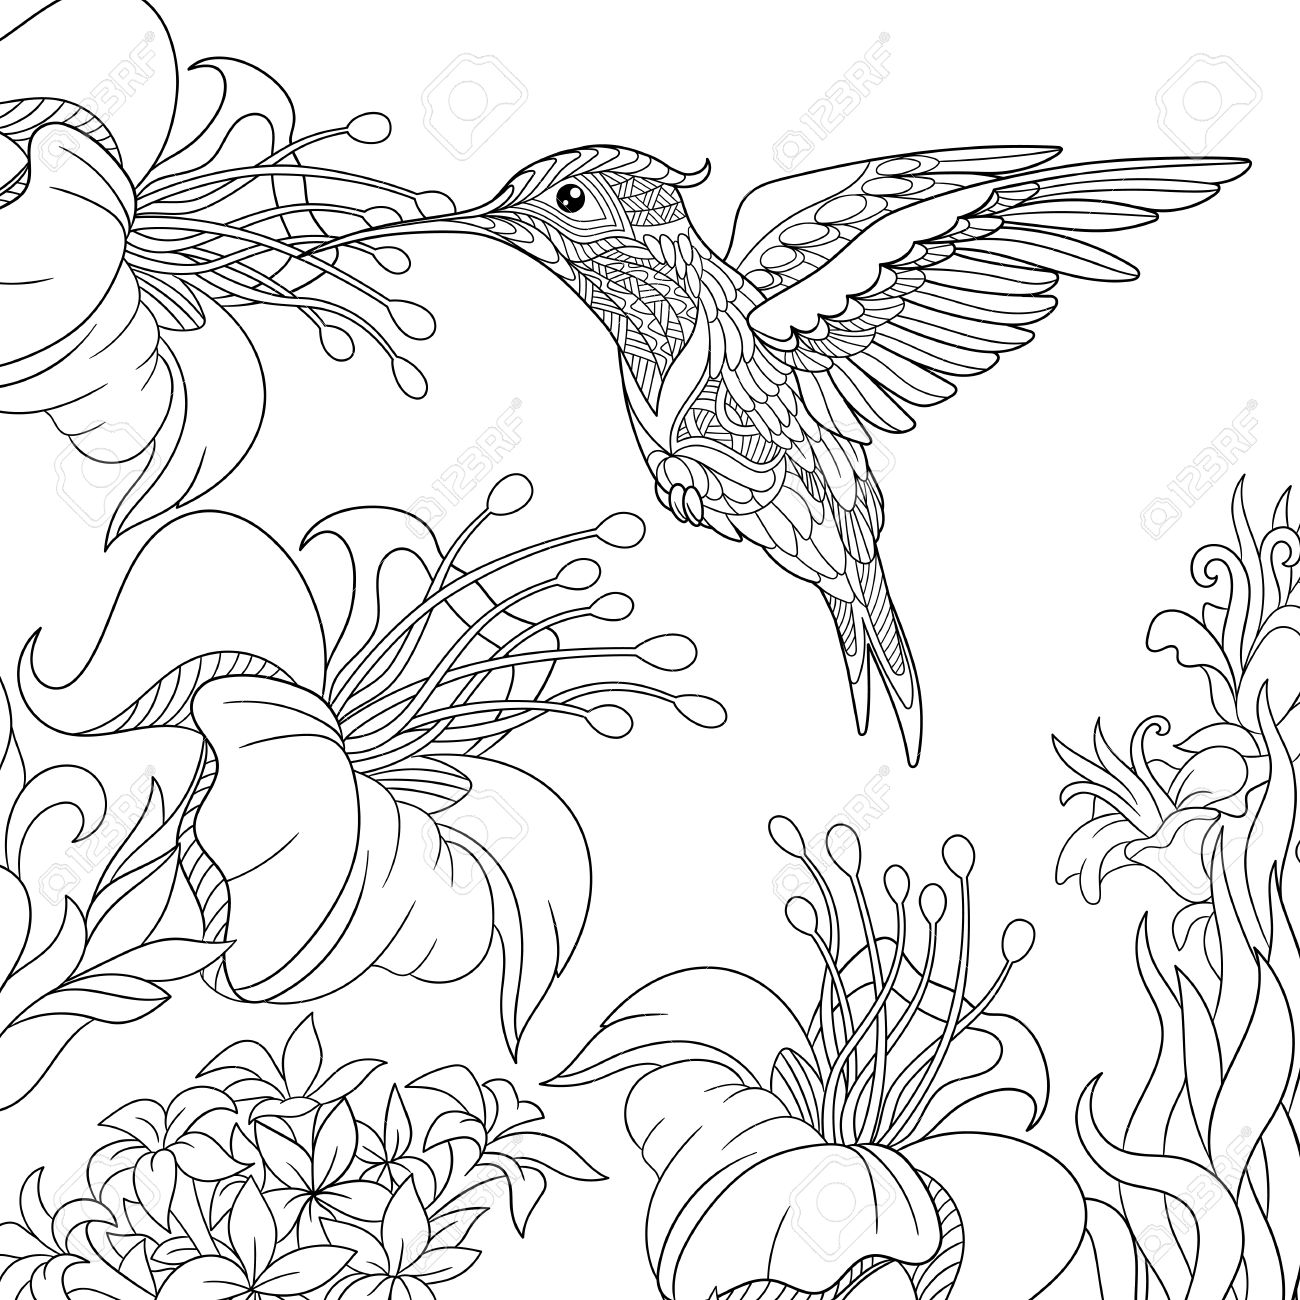 Hummingbird Animal Coloring Pages. Coloring page of hummingbird and hibiscus flowers  Freehand sketch drawing for adult antistress colouring book Page Of Hummingbird And Hibiscus Flowers Sketch